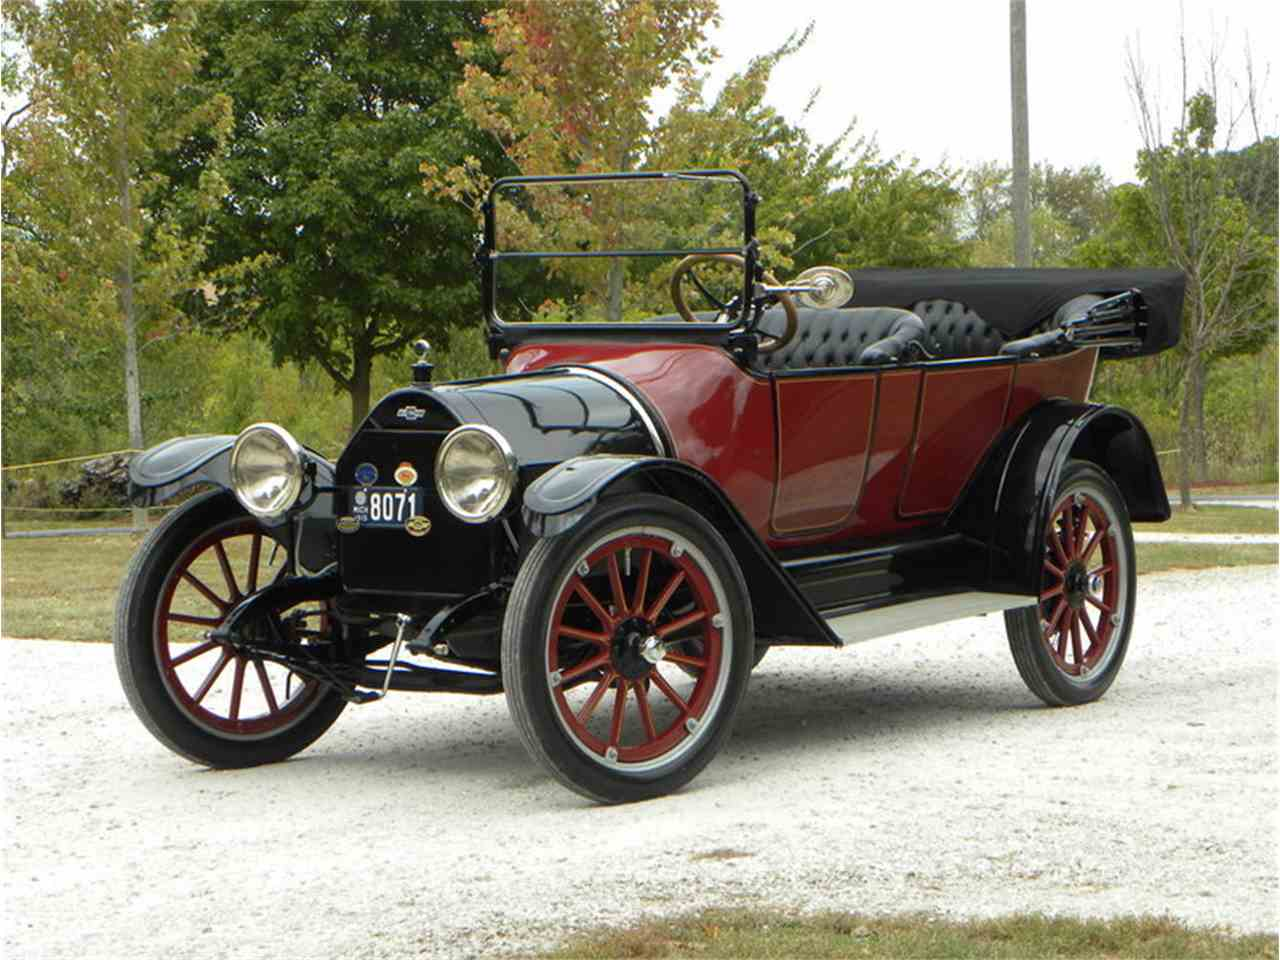 Century-old 1915 Chevrolet touring car - ClassicCars.com Journal